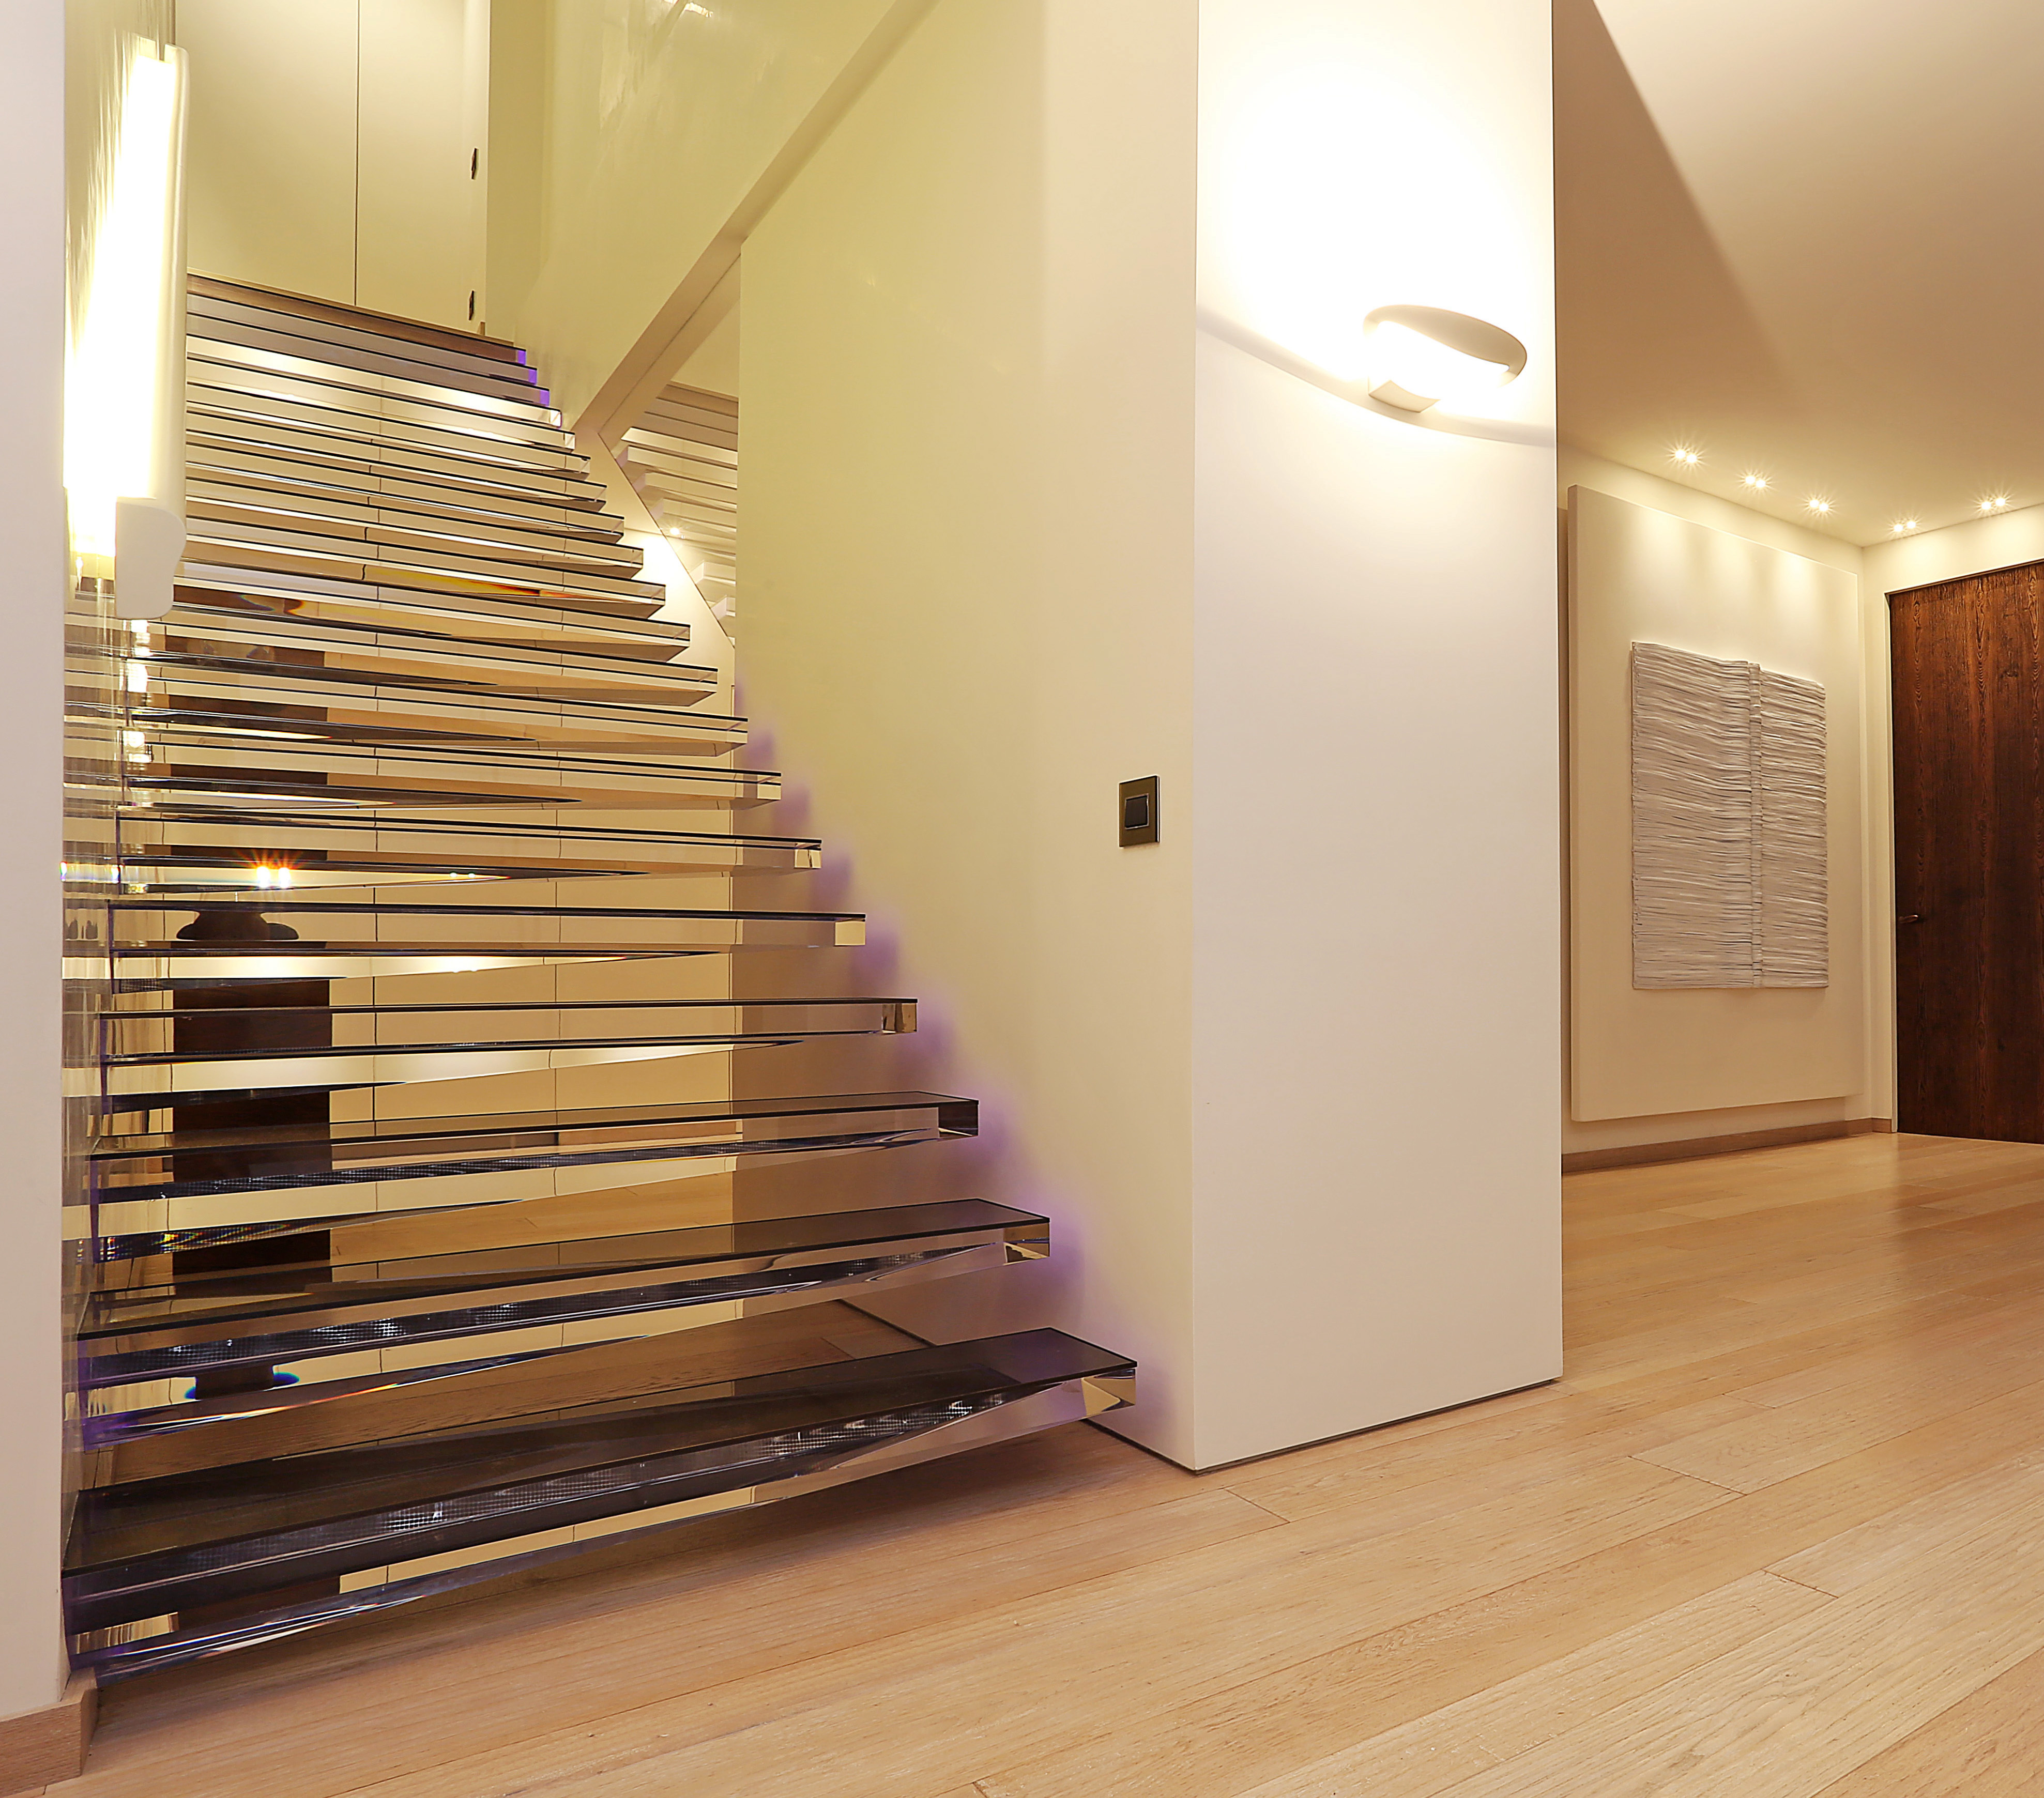 Siller has created a transparent staircase illuminated | STYLEPARK